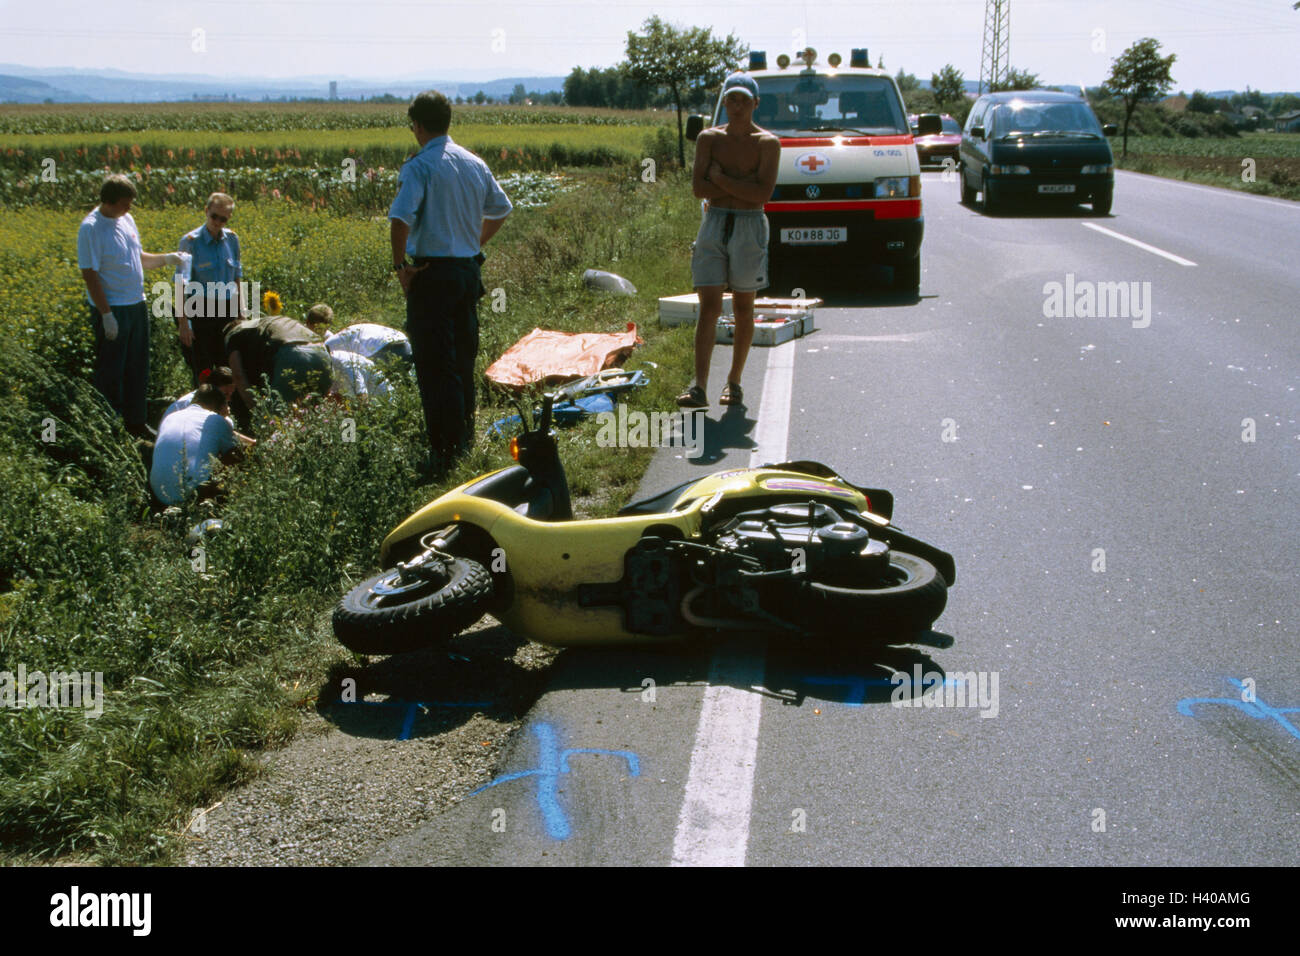 Traffic accident, roadside ditch, injured person, emergency doctor ...